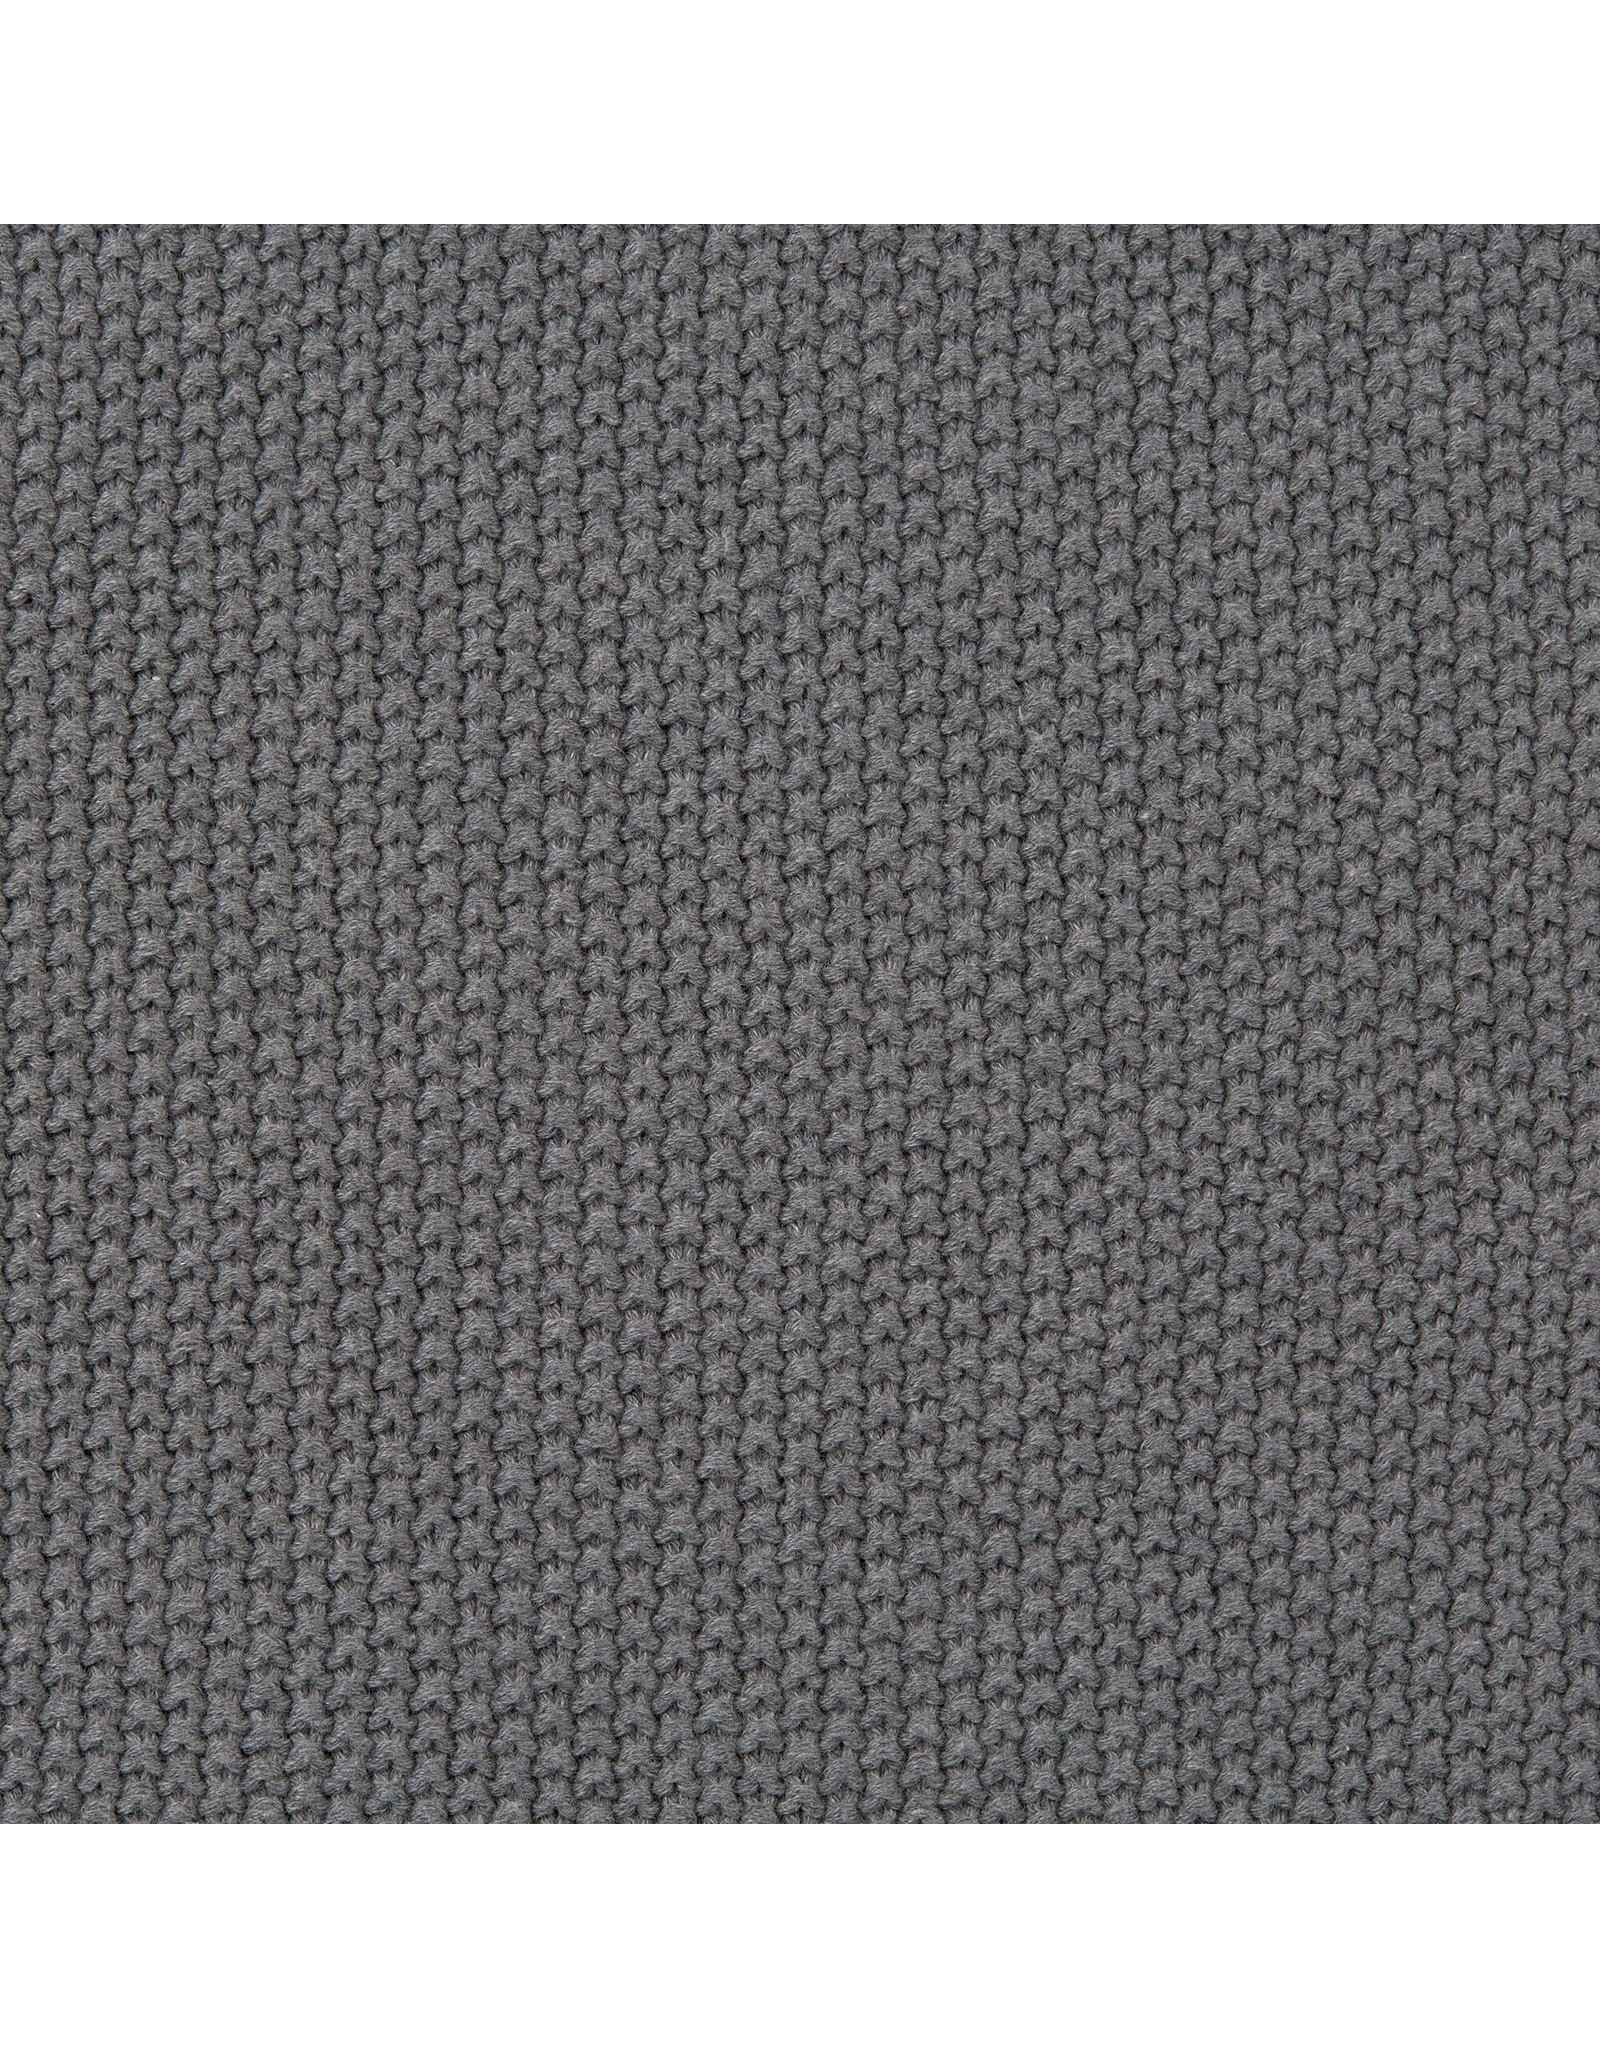 Lassig Lassig Knitted Blanket For Baby Seat Anthracite 85x85cm